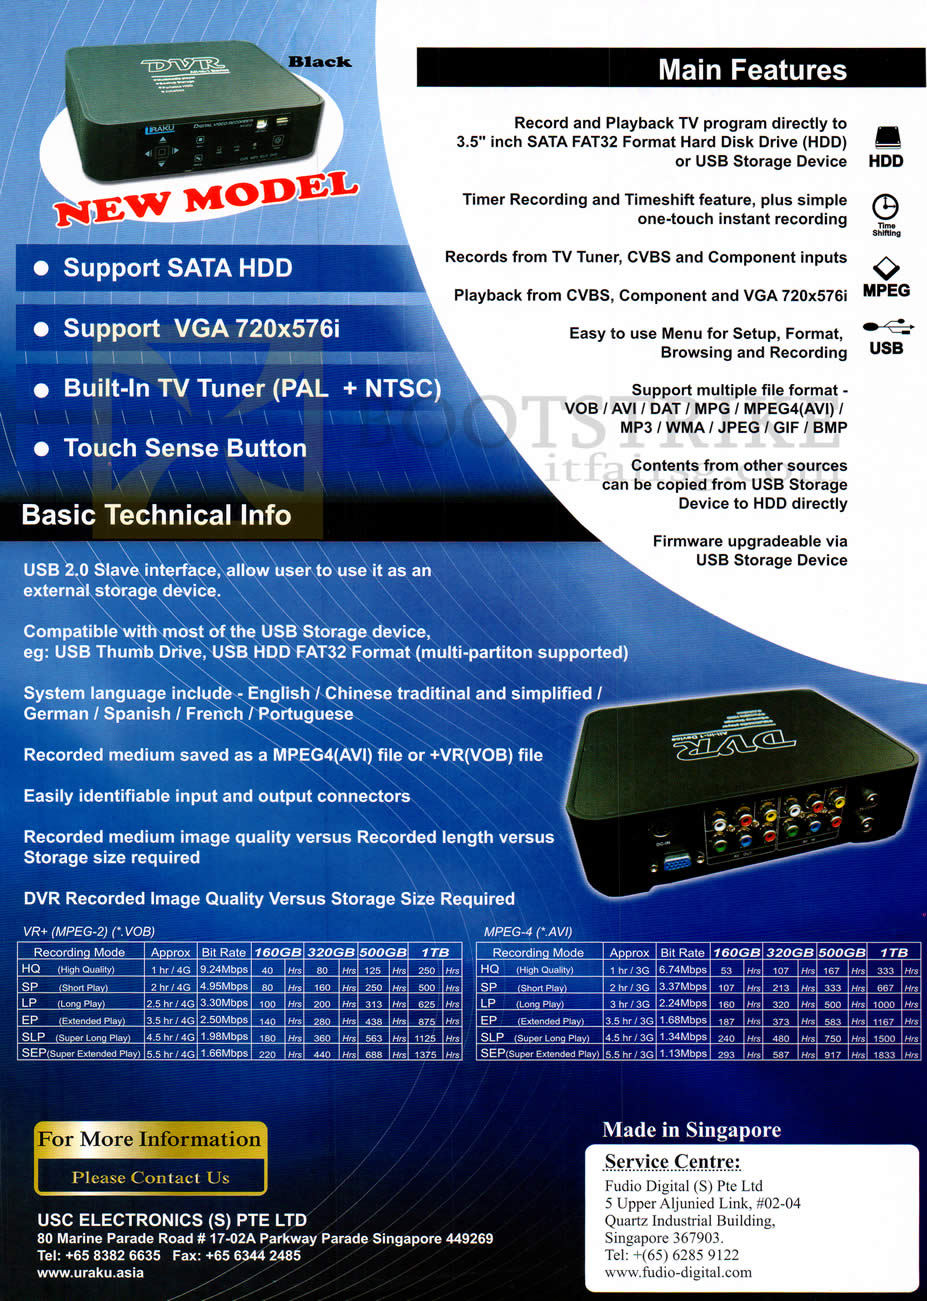 SITEX 2012 price list image brochure of UKC Electronics Uraku Media Player NV-812 Features, TV Tuner, DVR Recorder